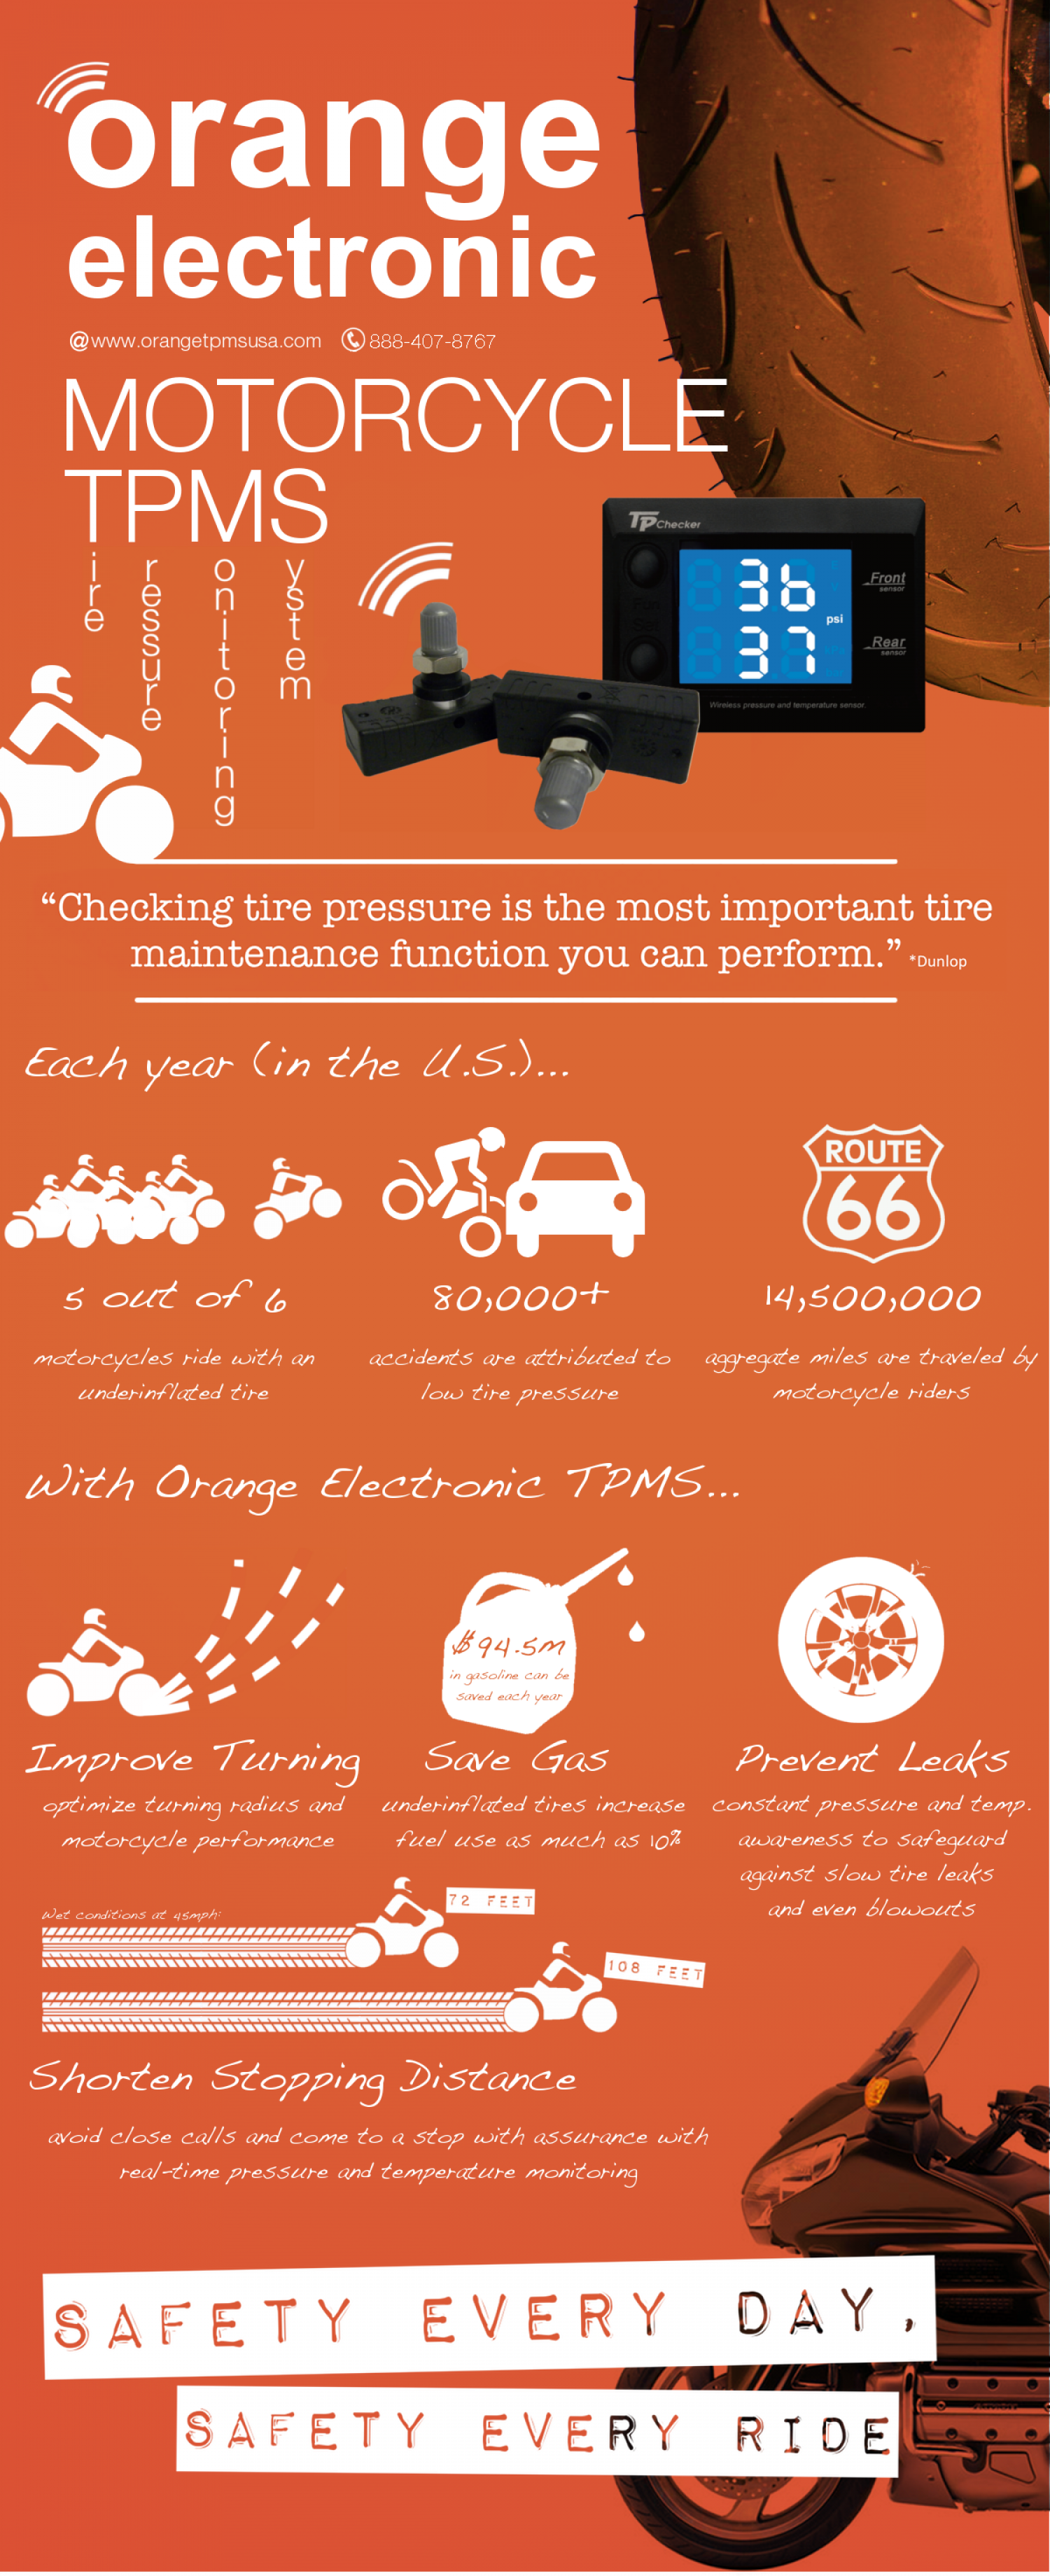 Orange Electronic Motorcycle Tire Pressure Monitoring System - Benefits Infographic